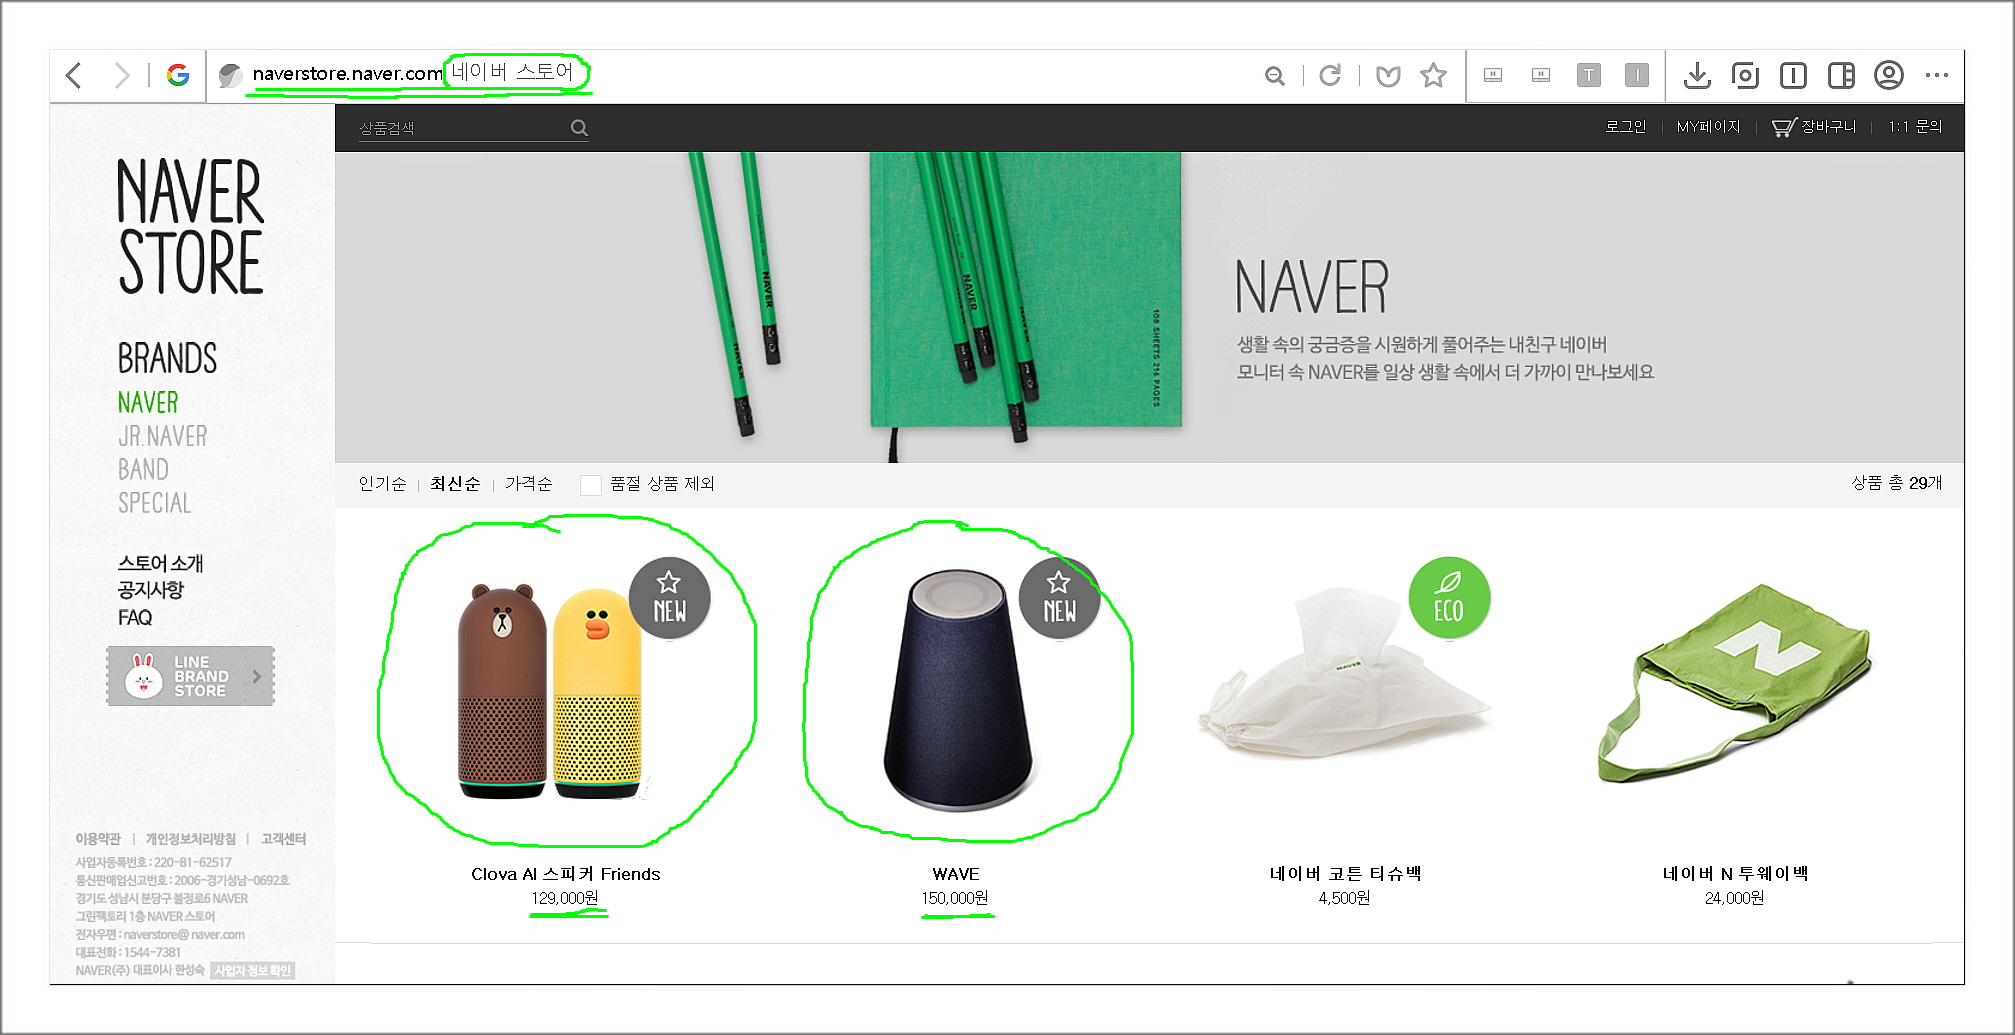 mb-file.php?path=2017%2F10%2F31%2FF590_naver_store.jpg